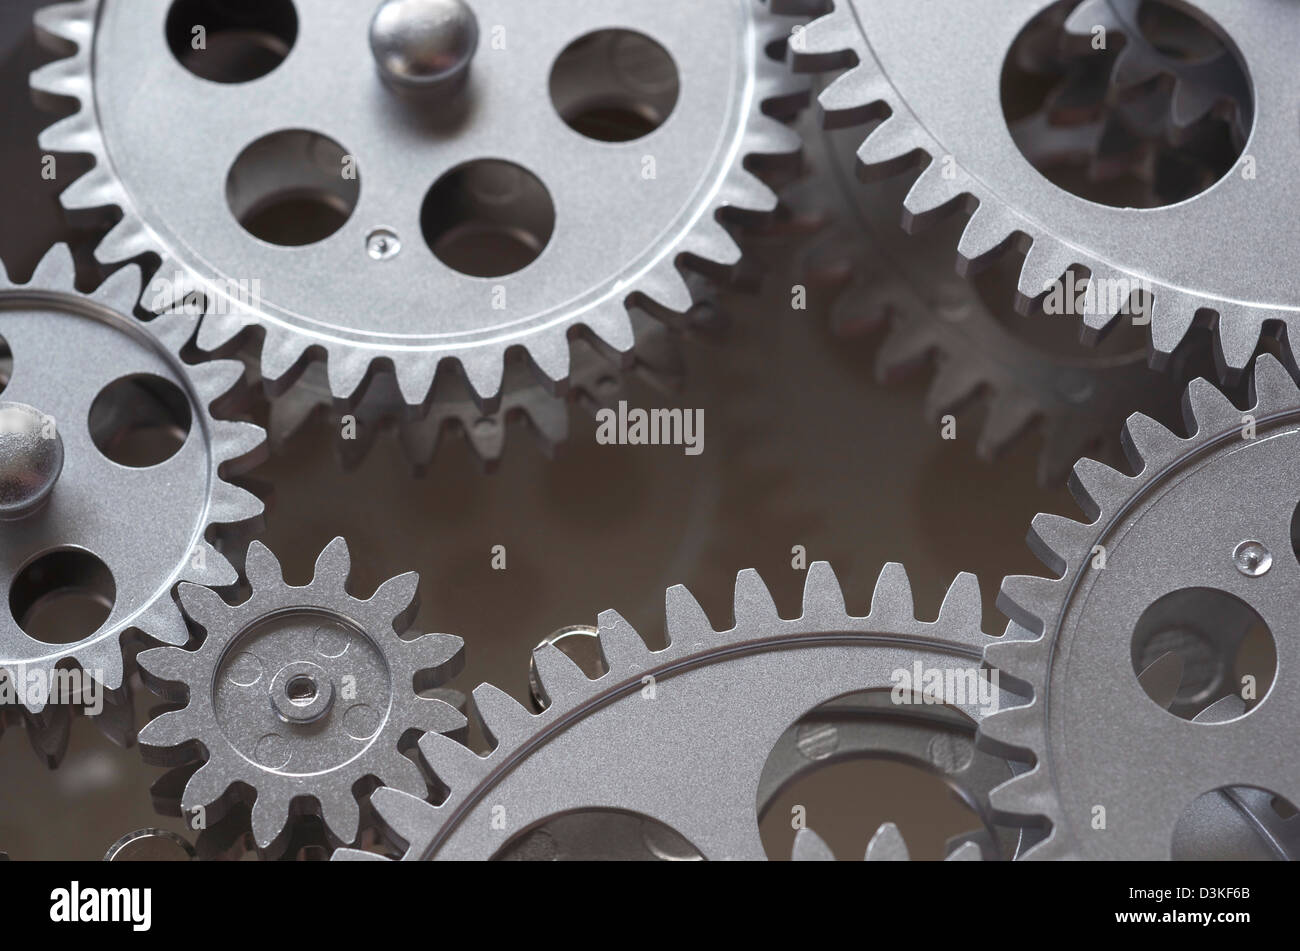 Gears interlocked that are gray, and around the perimeter of the frame with darker reflective area in the center. - Stock Image